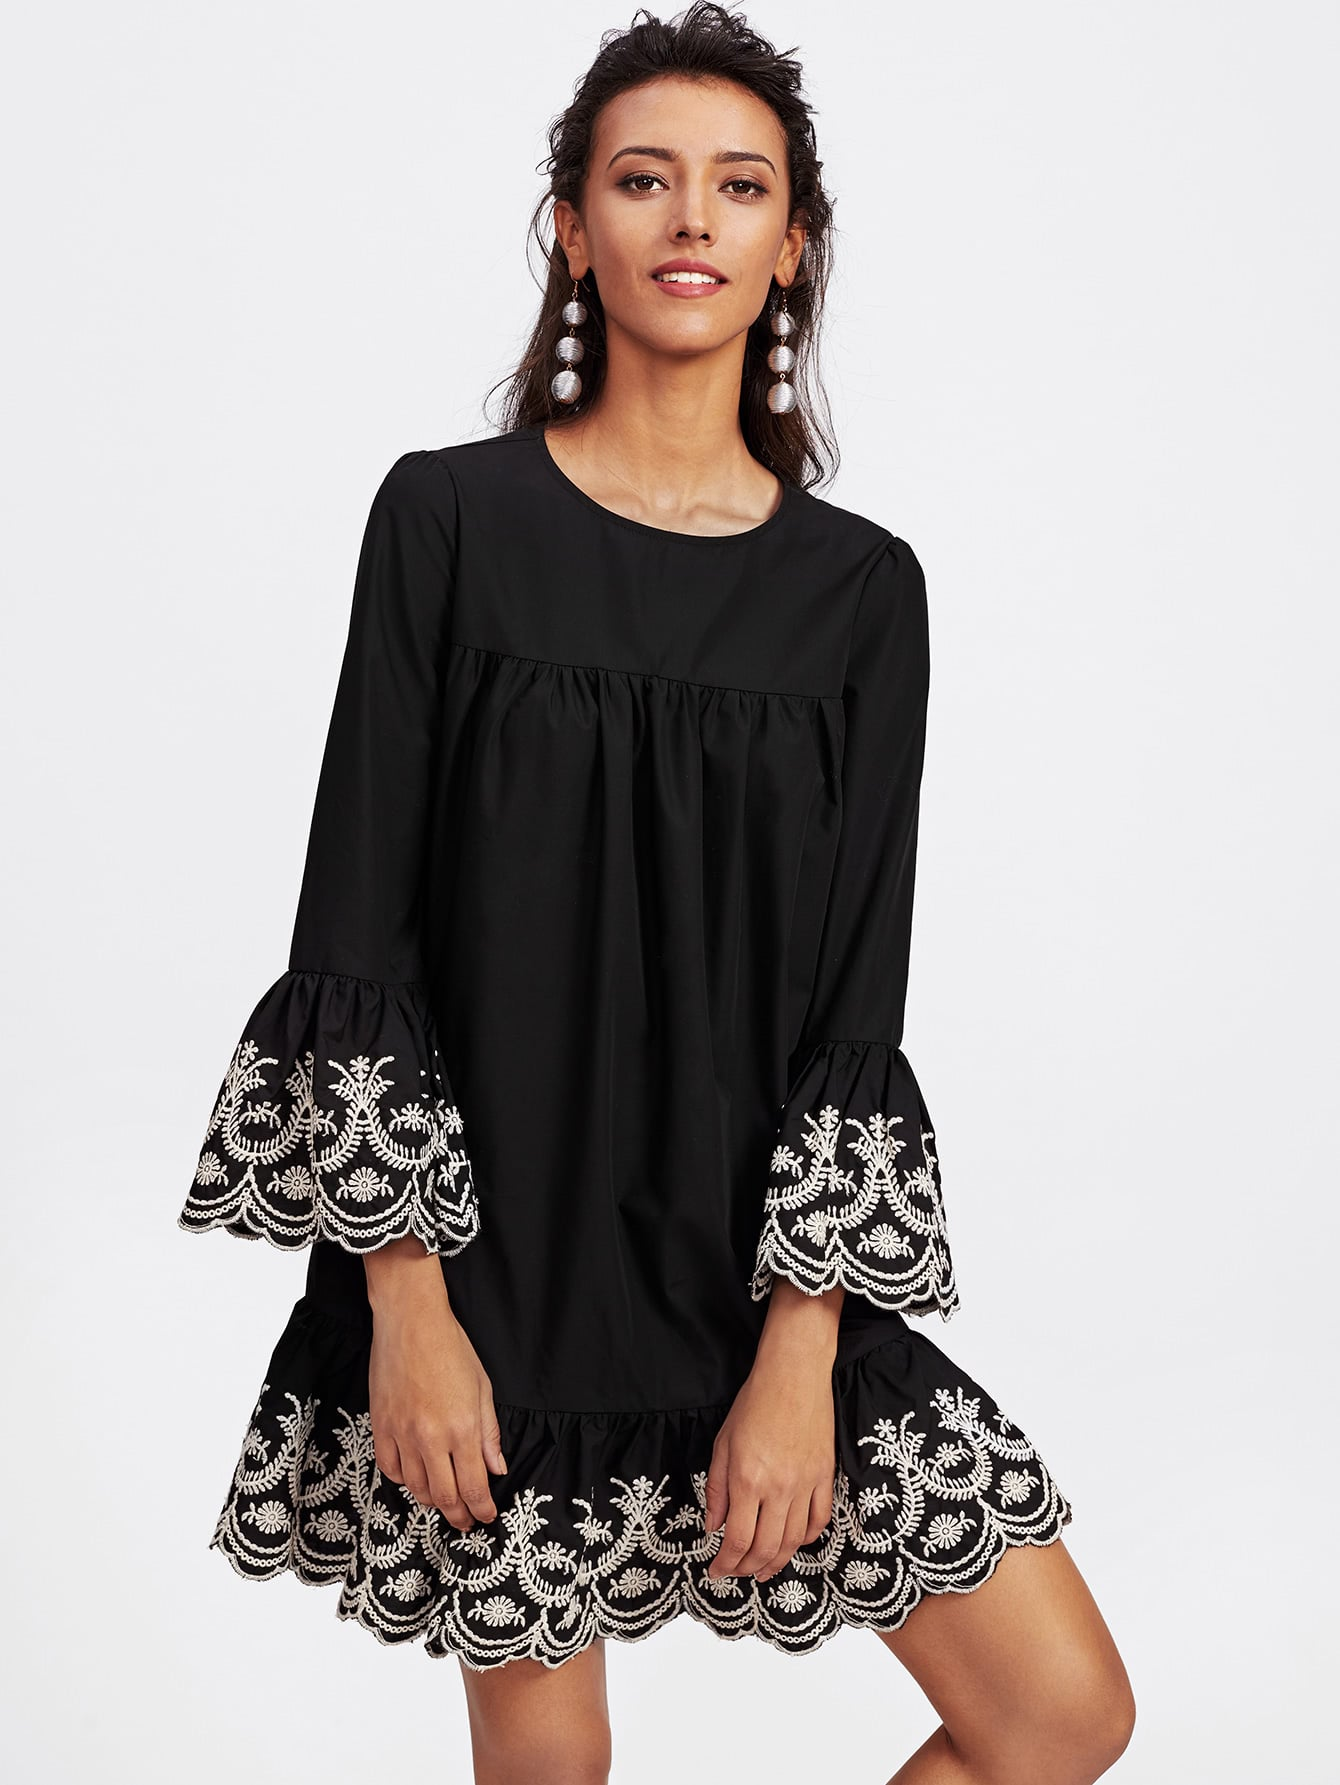 Vine Embroidered Ruffle Cuff And Hem Scalloped Dress embroidered double layer asym hem sheath dress